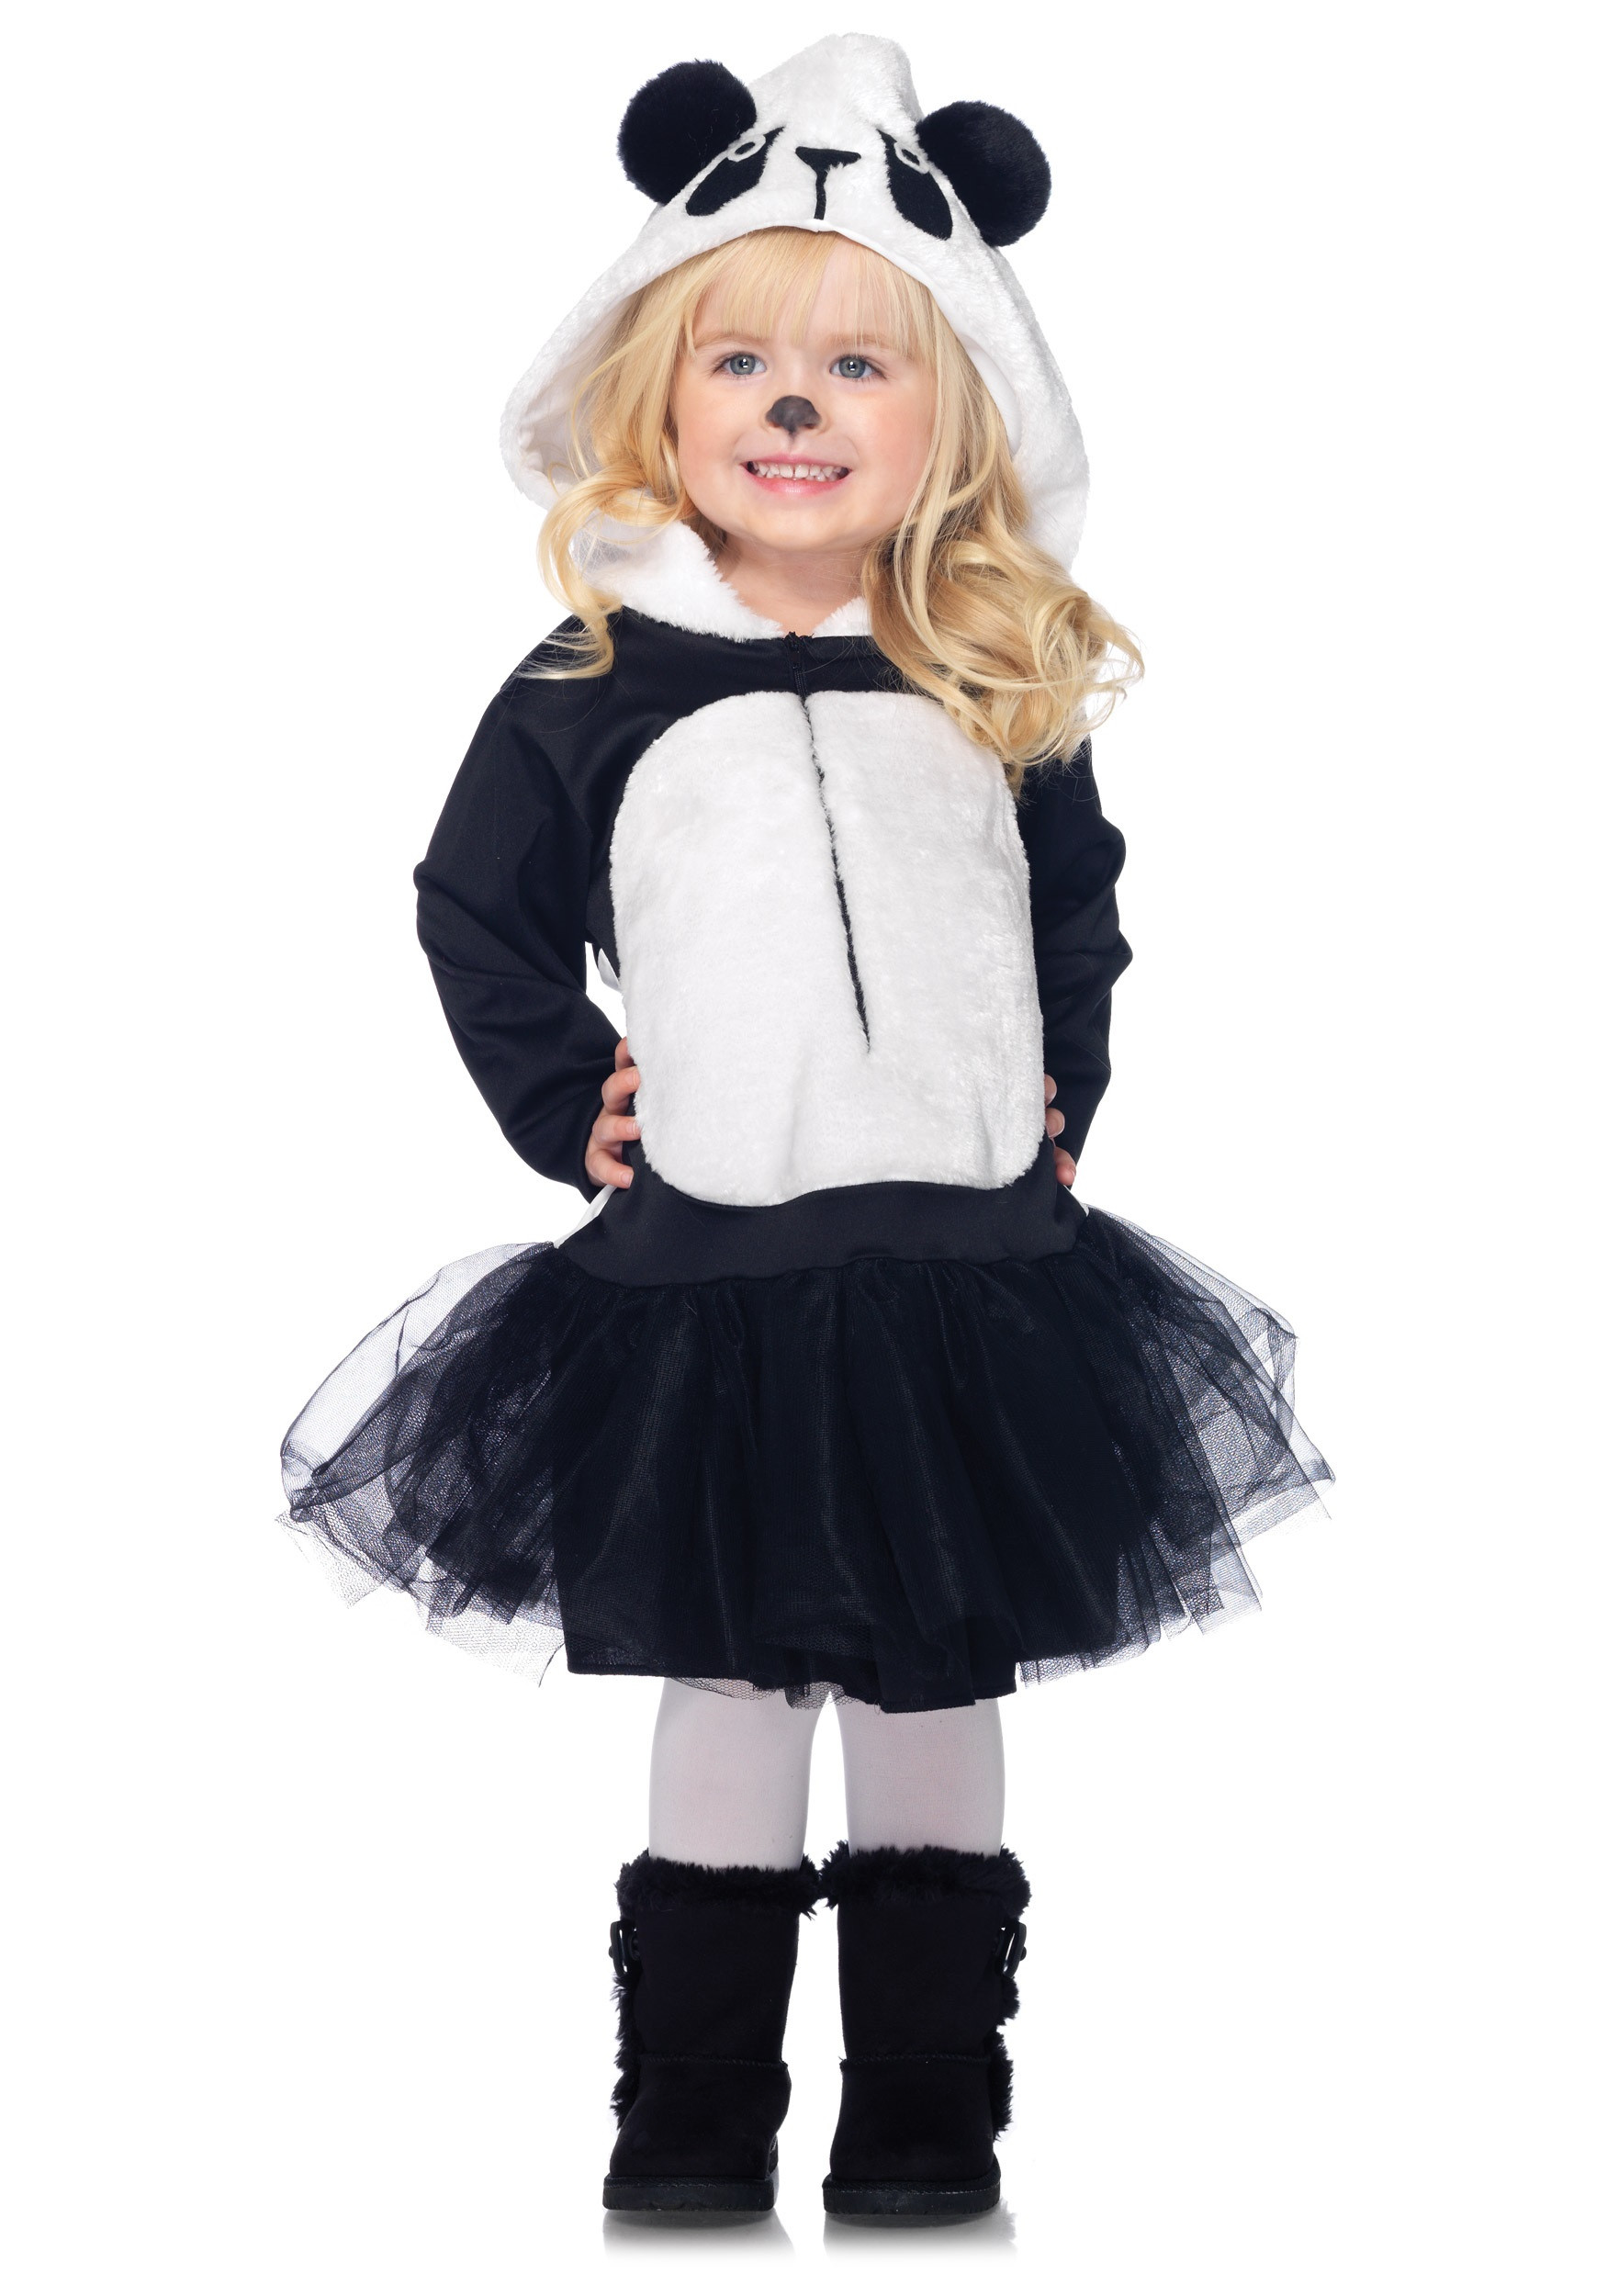 Best ideas about Panda Costume DIY . Save or Pin Panda Bear Costumes Now.